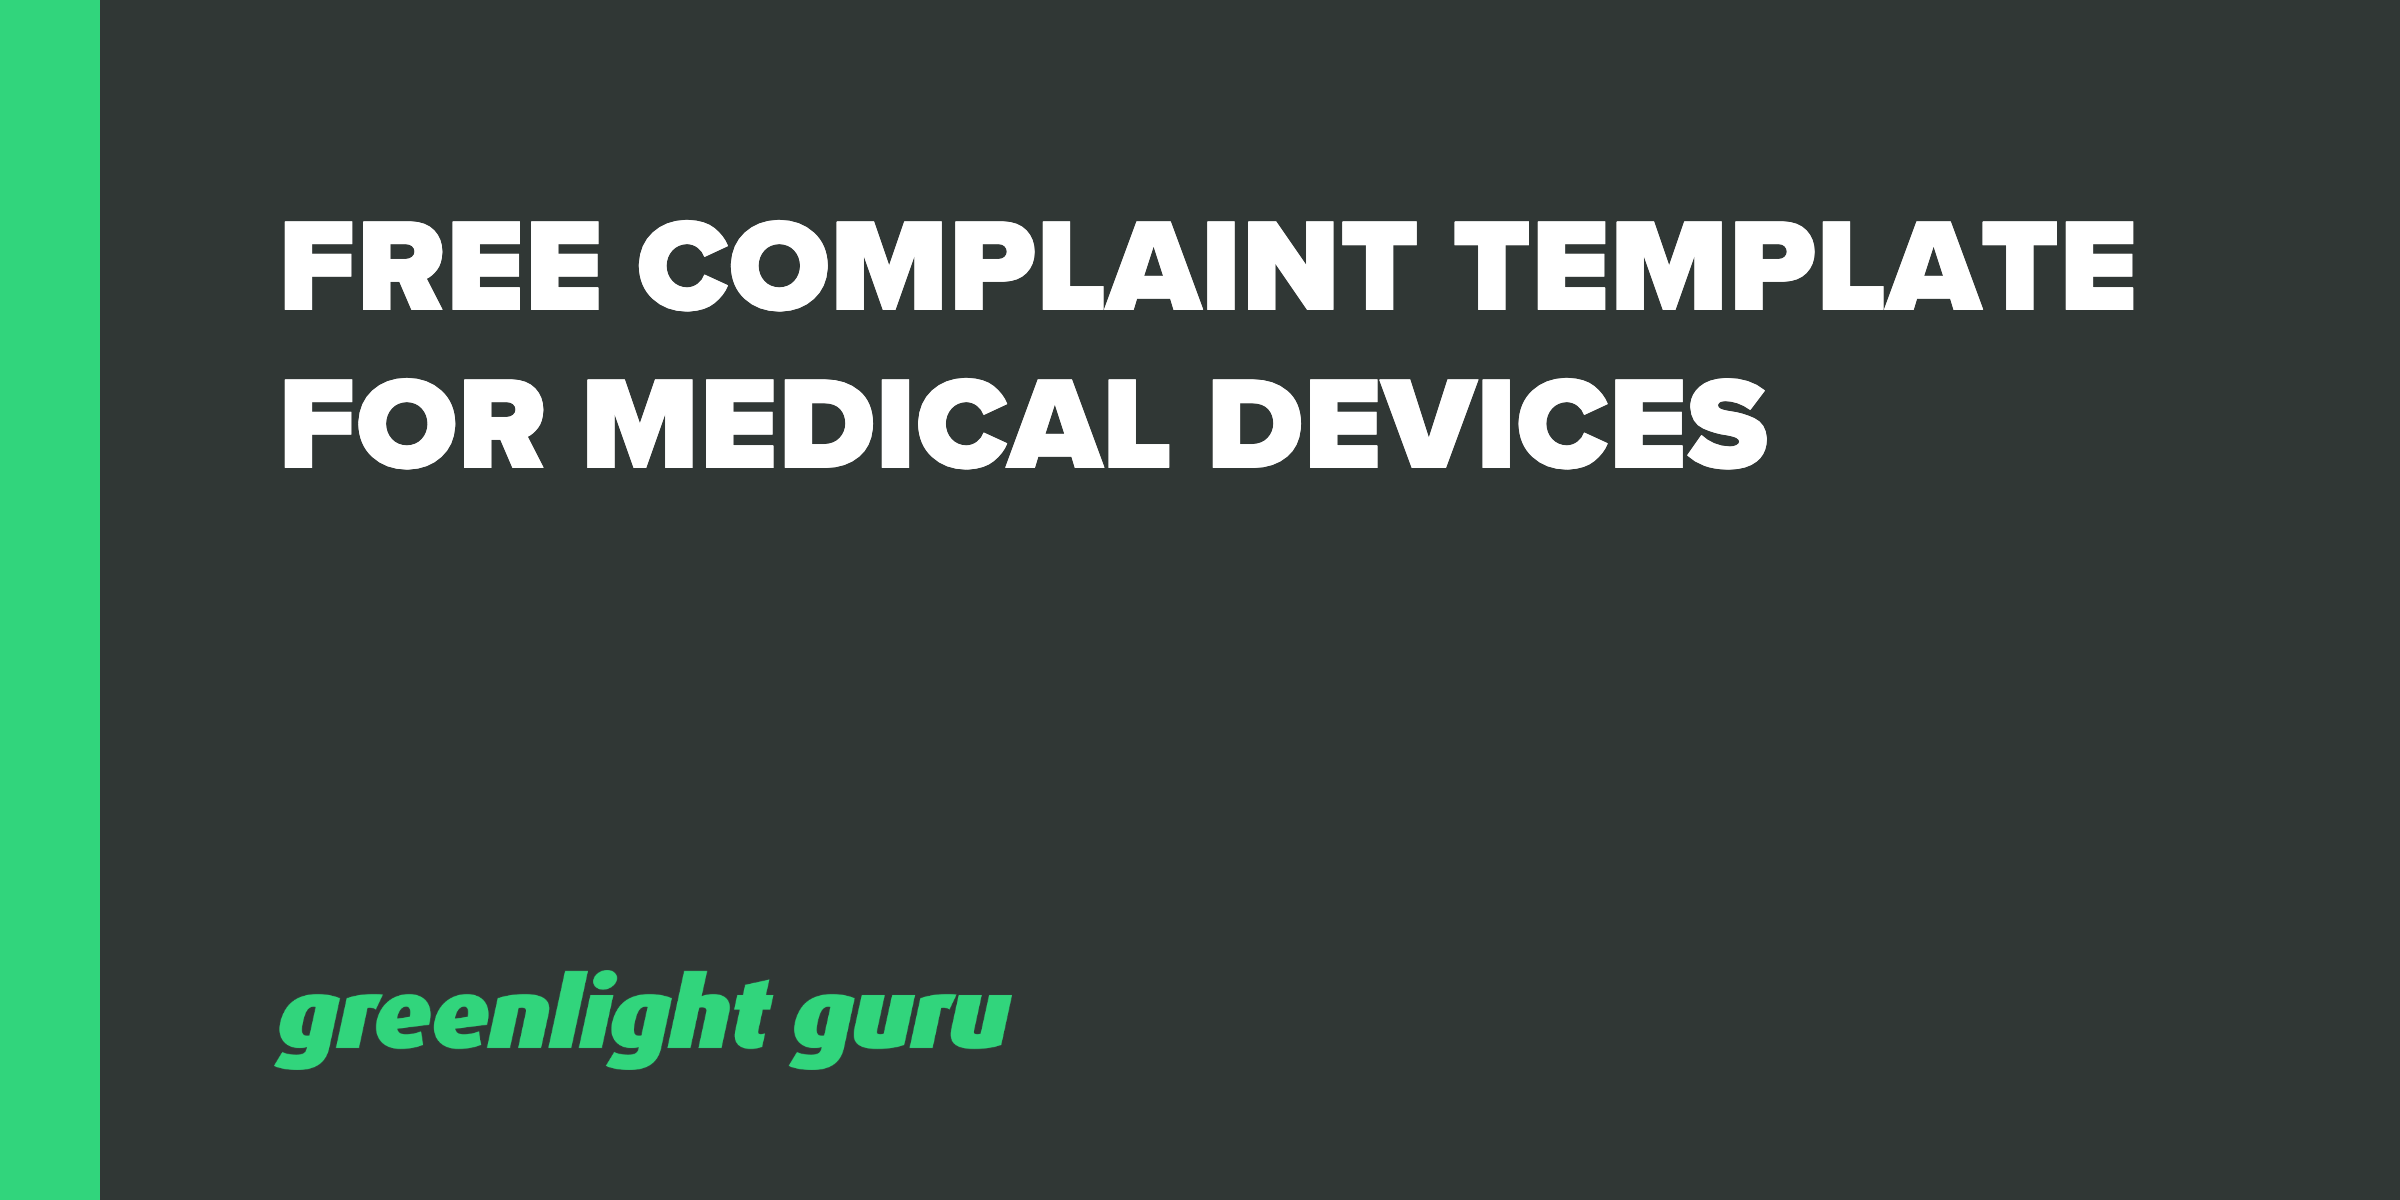 Free-Complaint-Template-Medical-Devices